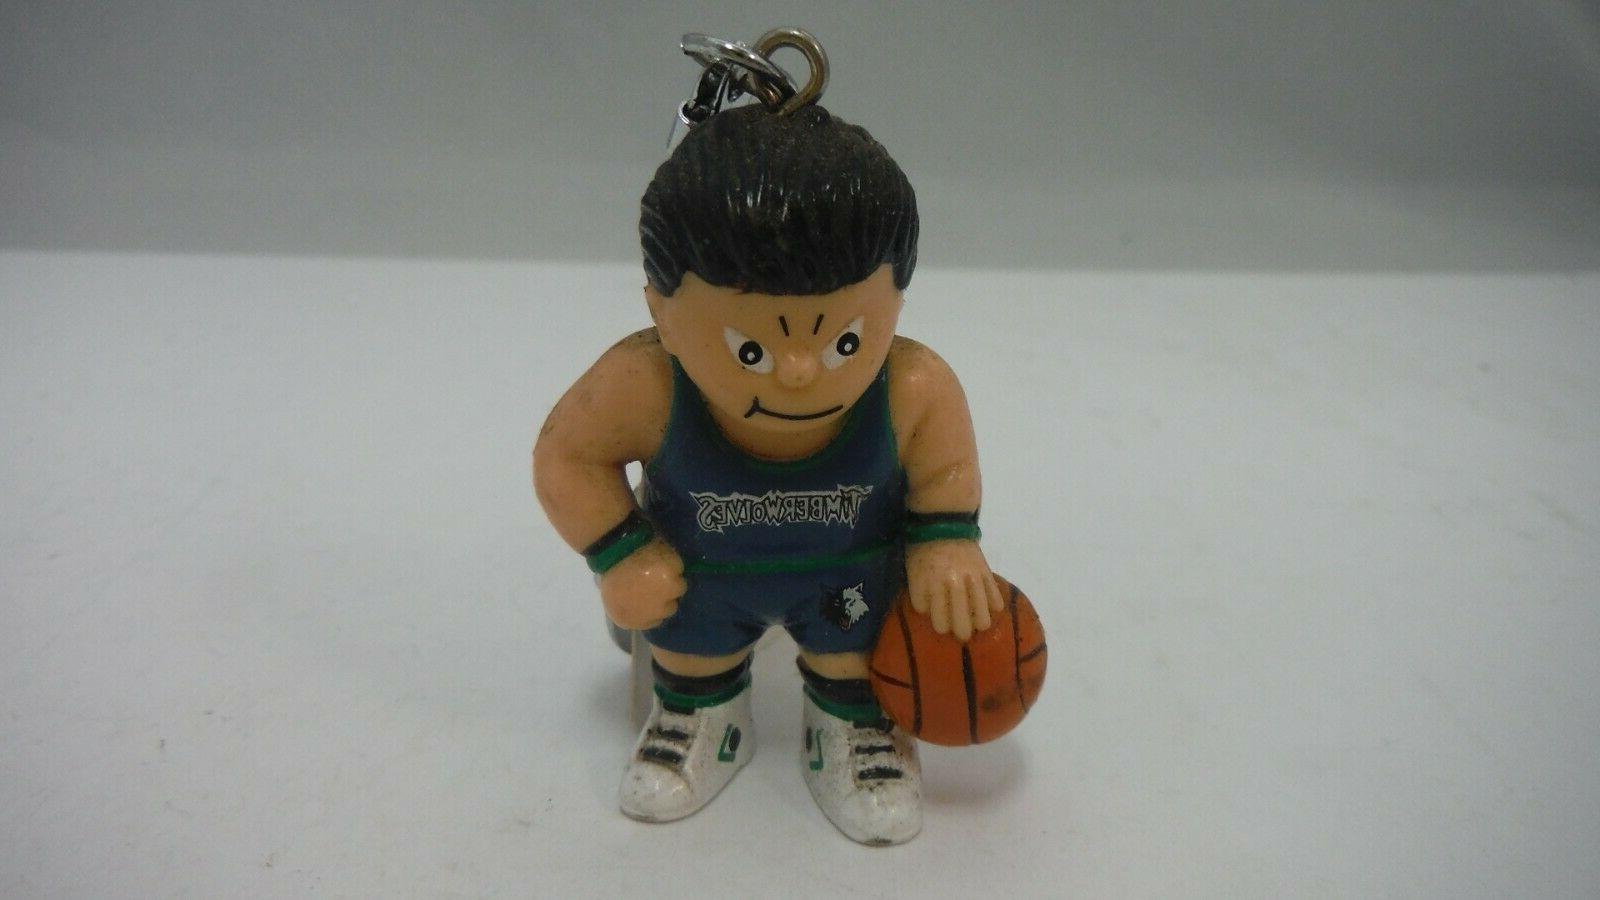 nba licensed lil sports brat football collectible